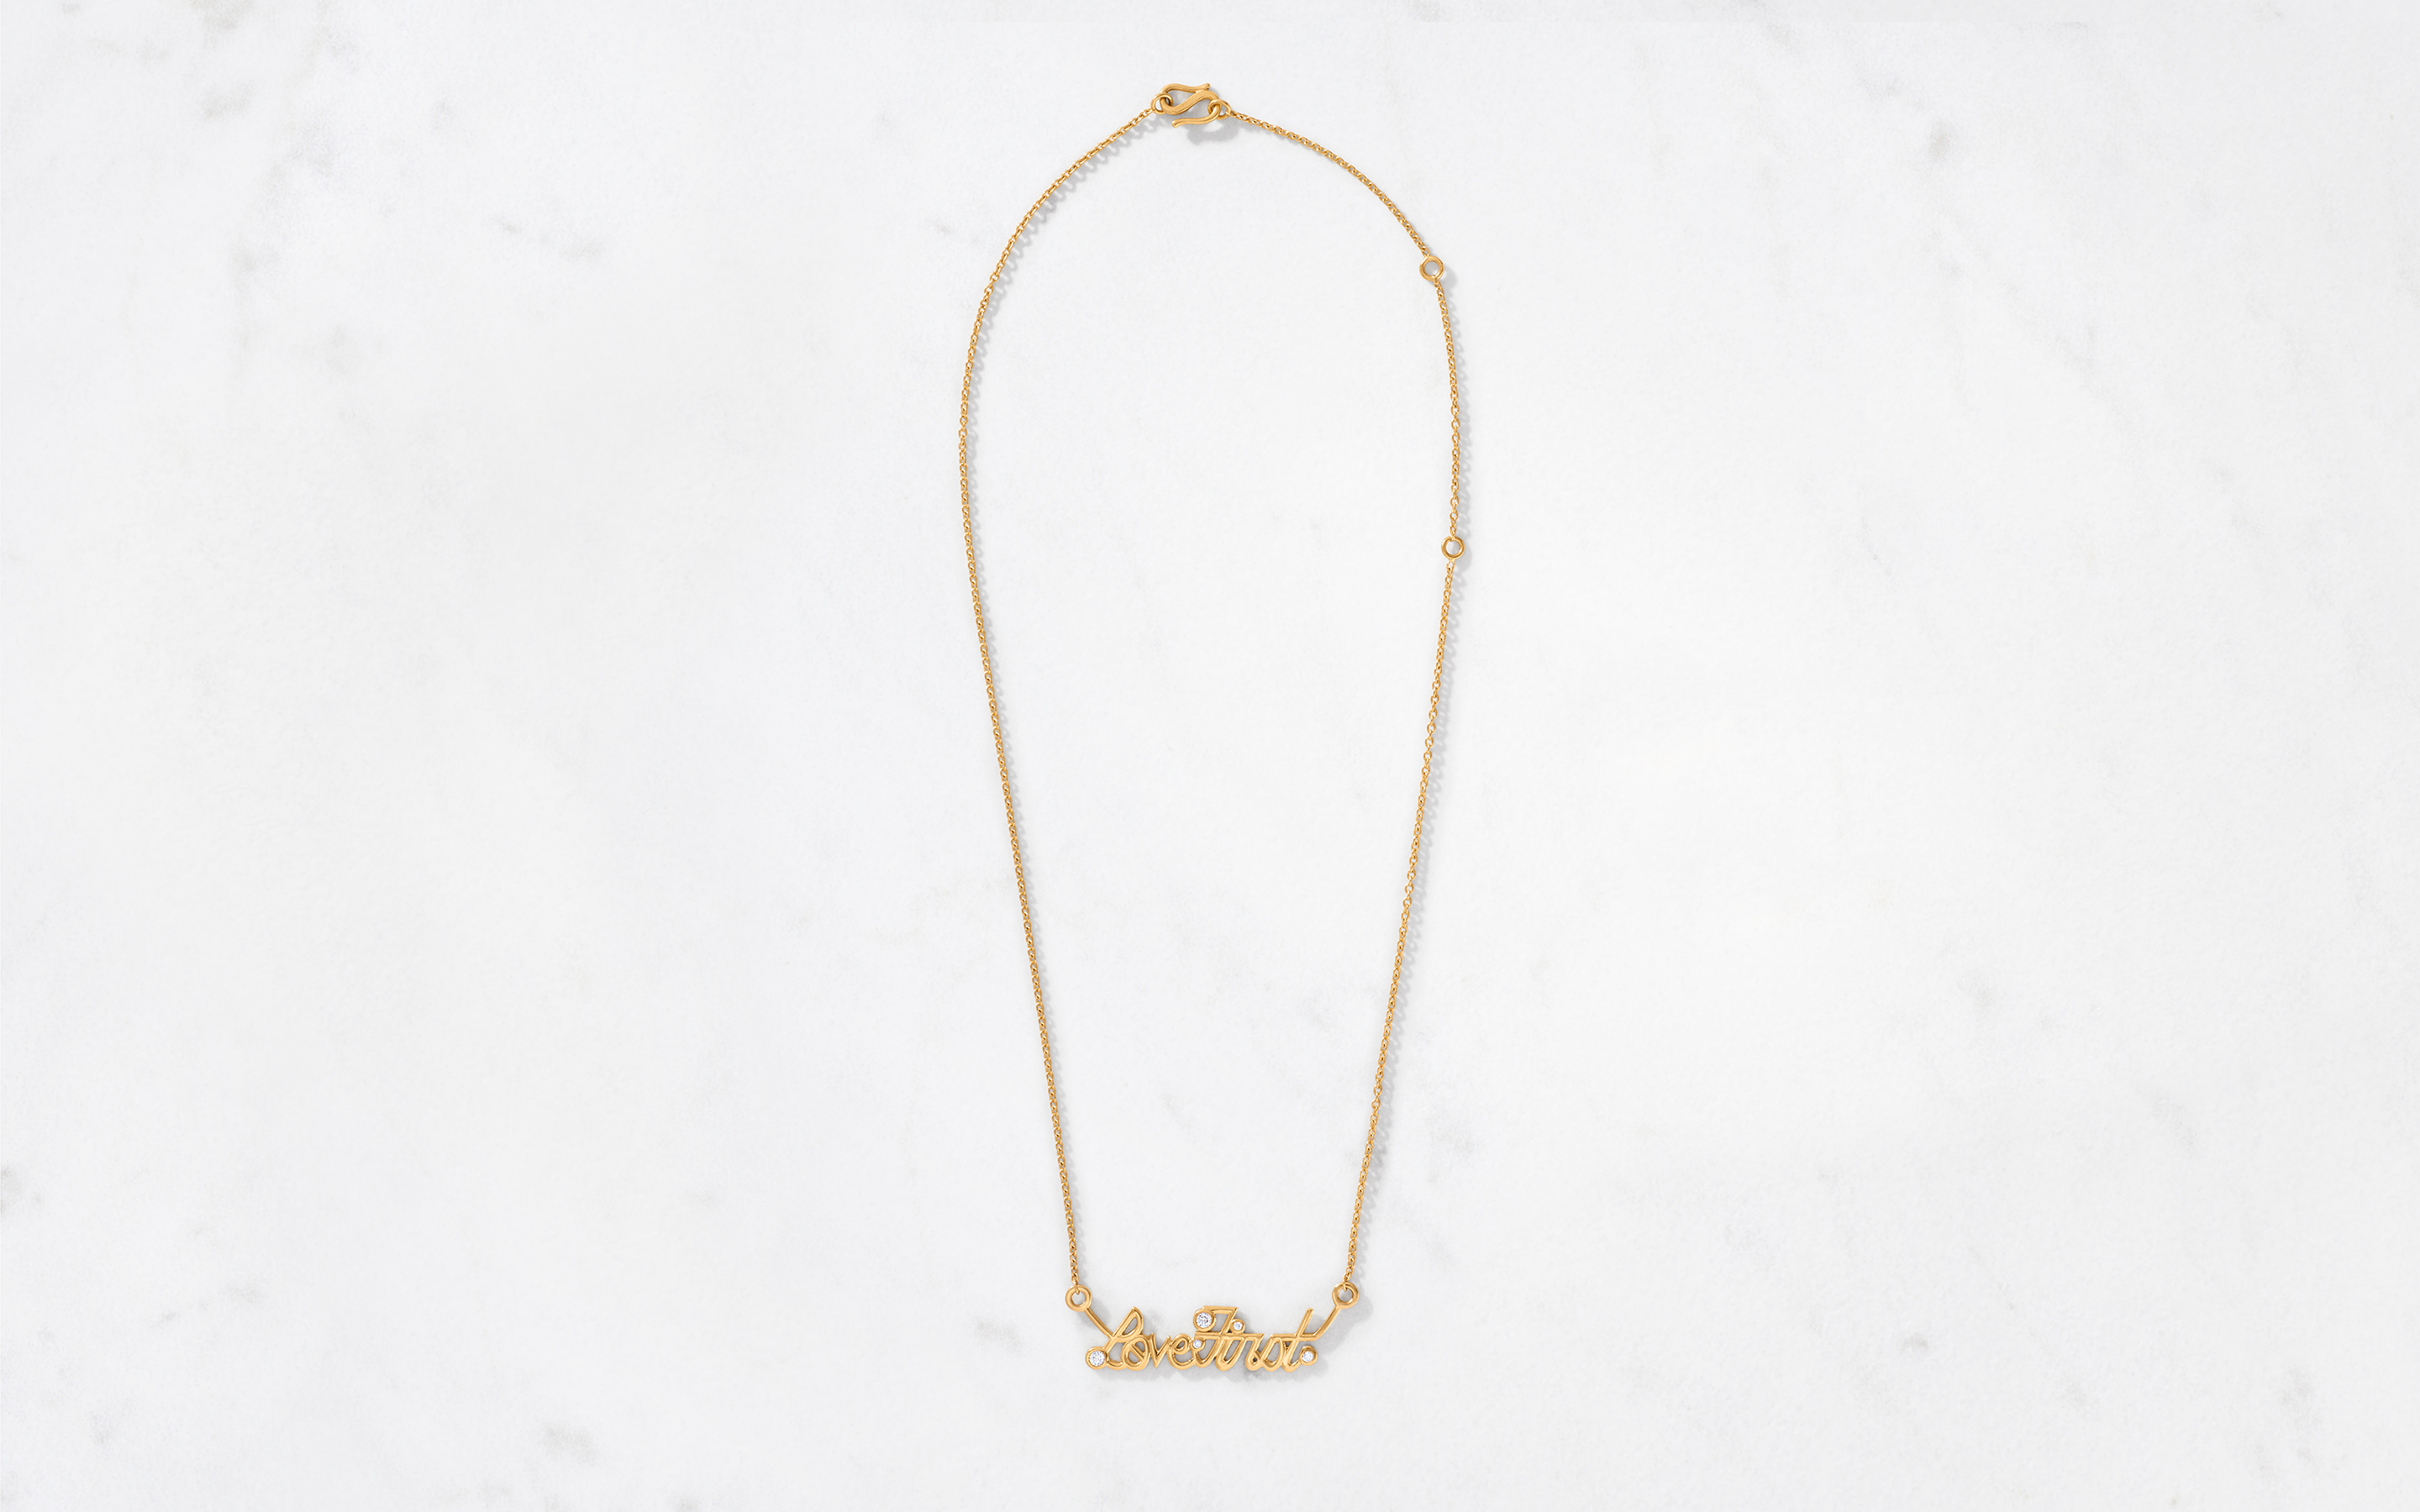 Stunning 22 karat polished gold necklace